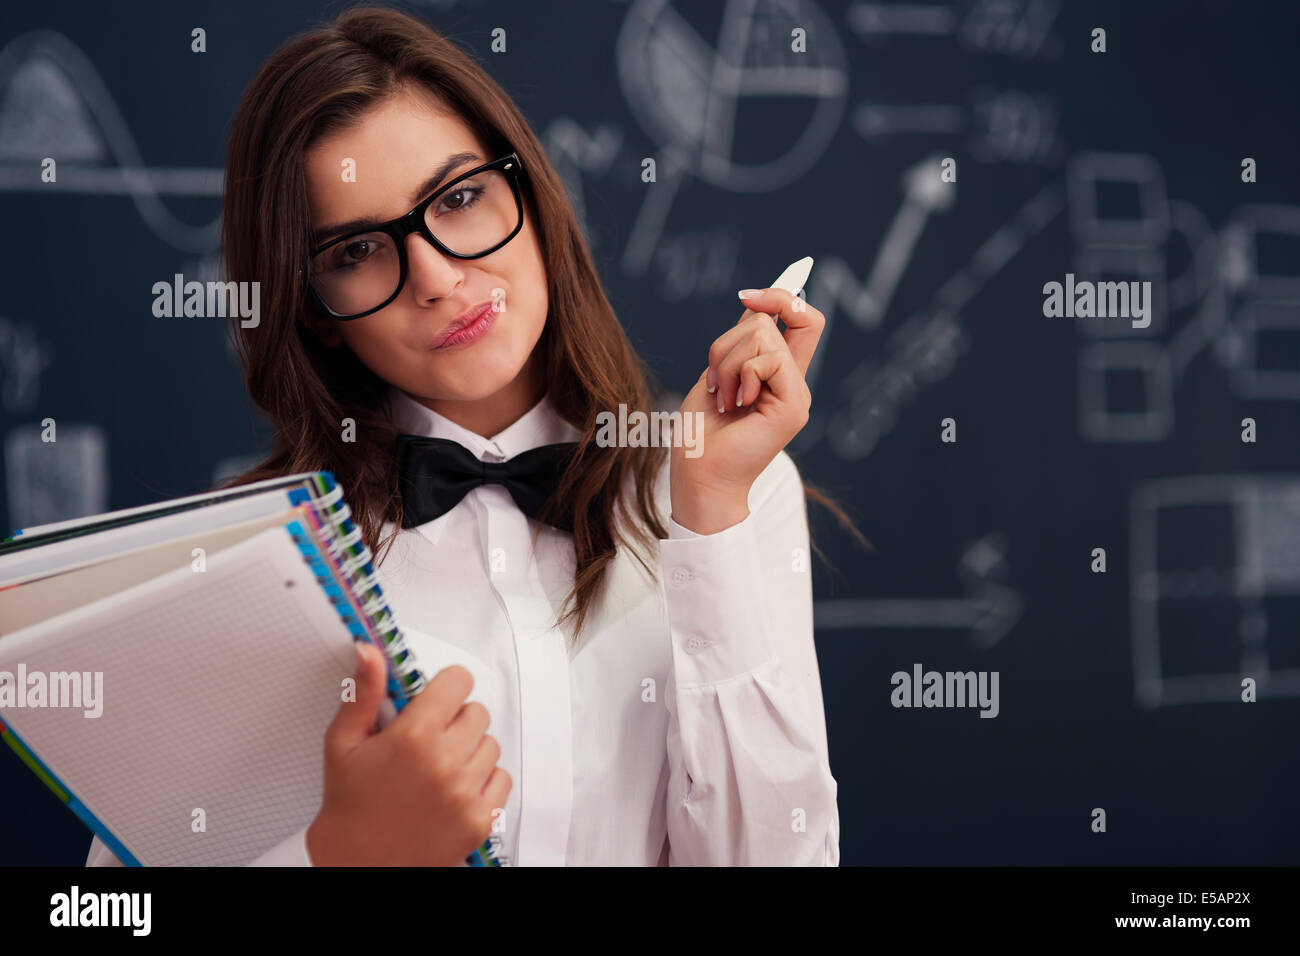 Woman with notebooks and chalk, Debica, Poland - Stock Image